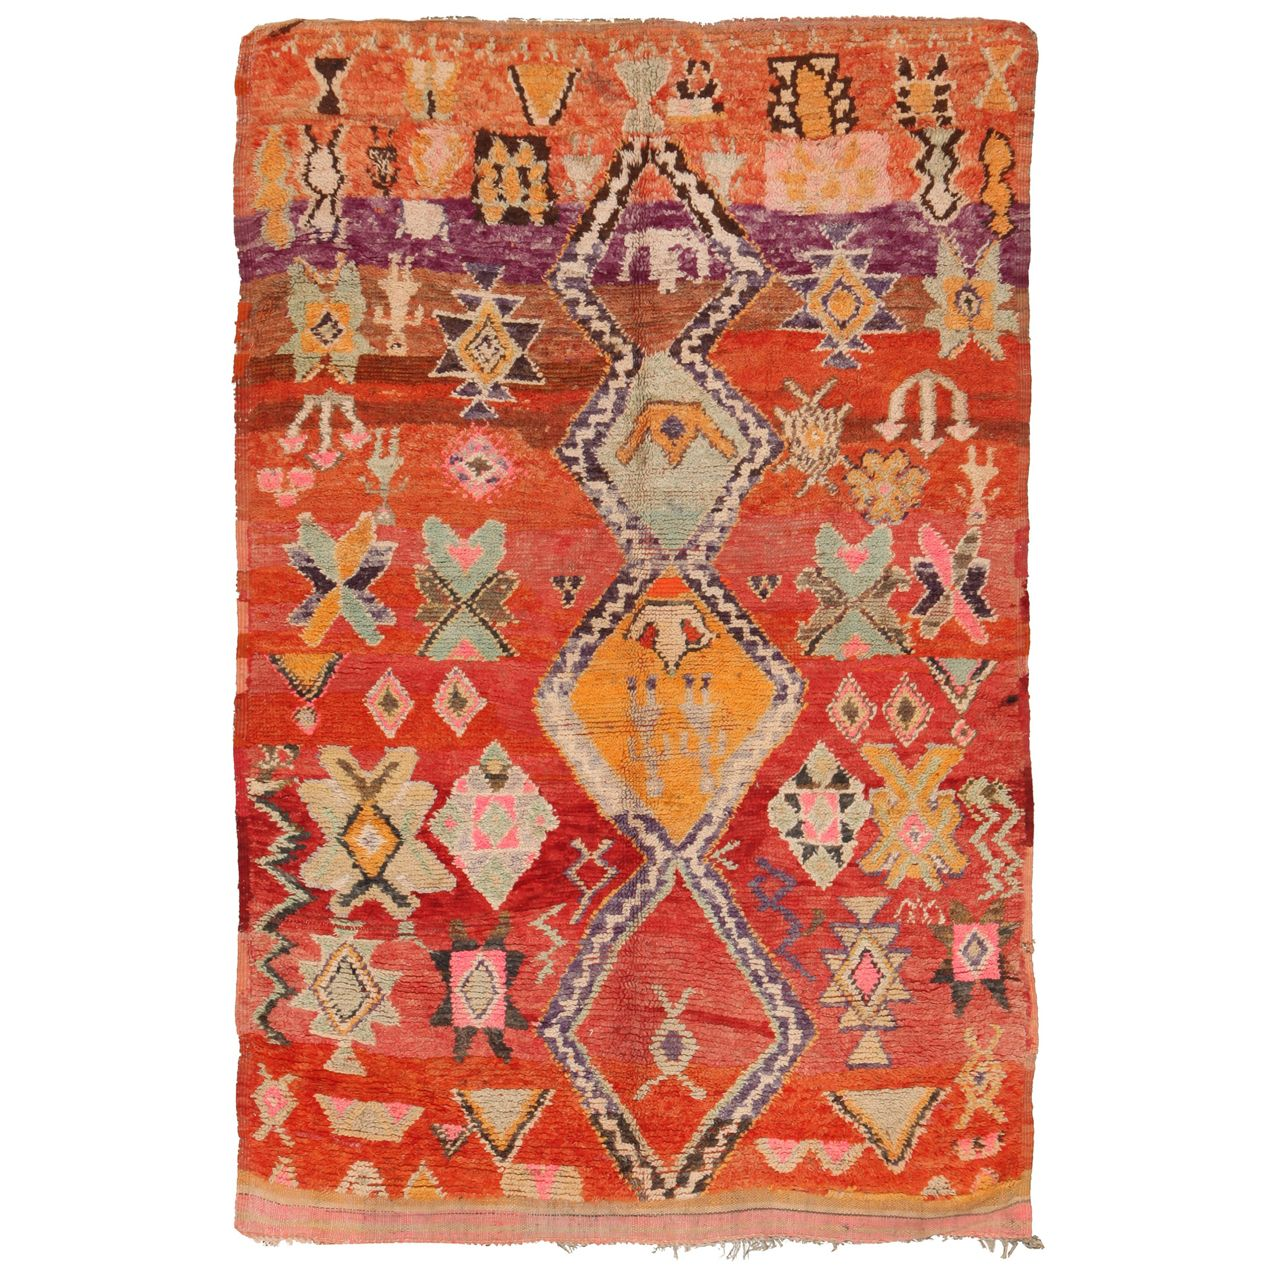 Vintage Moroccan | From a unique collection of antique and modern moroccan and north african rugs at http://www.1stdibs.com/furniture/rugs-carpets/moroccan-rugs/